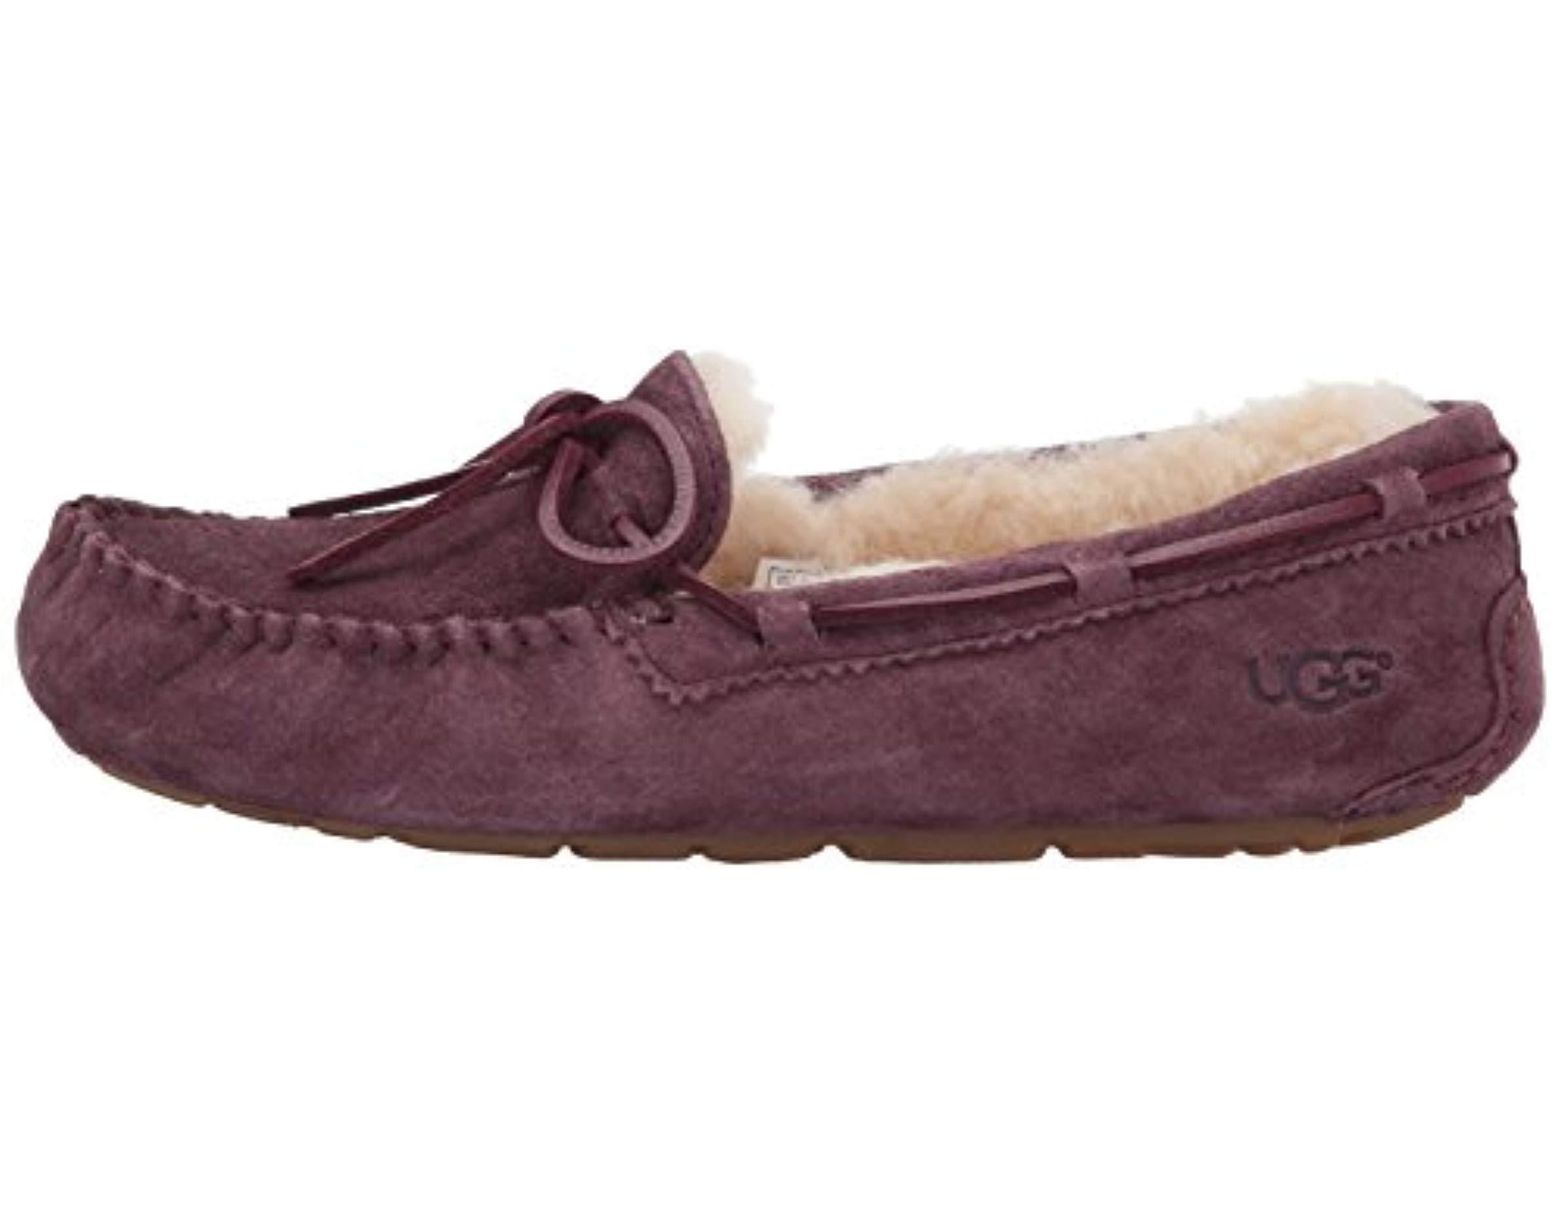 bcf43105263 Women's Dakota Metallic Slipper